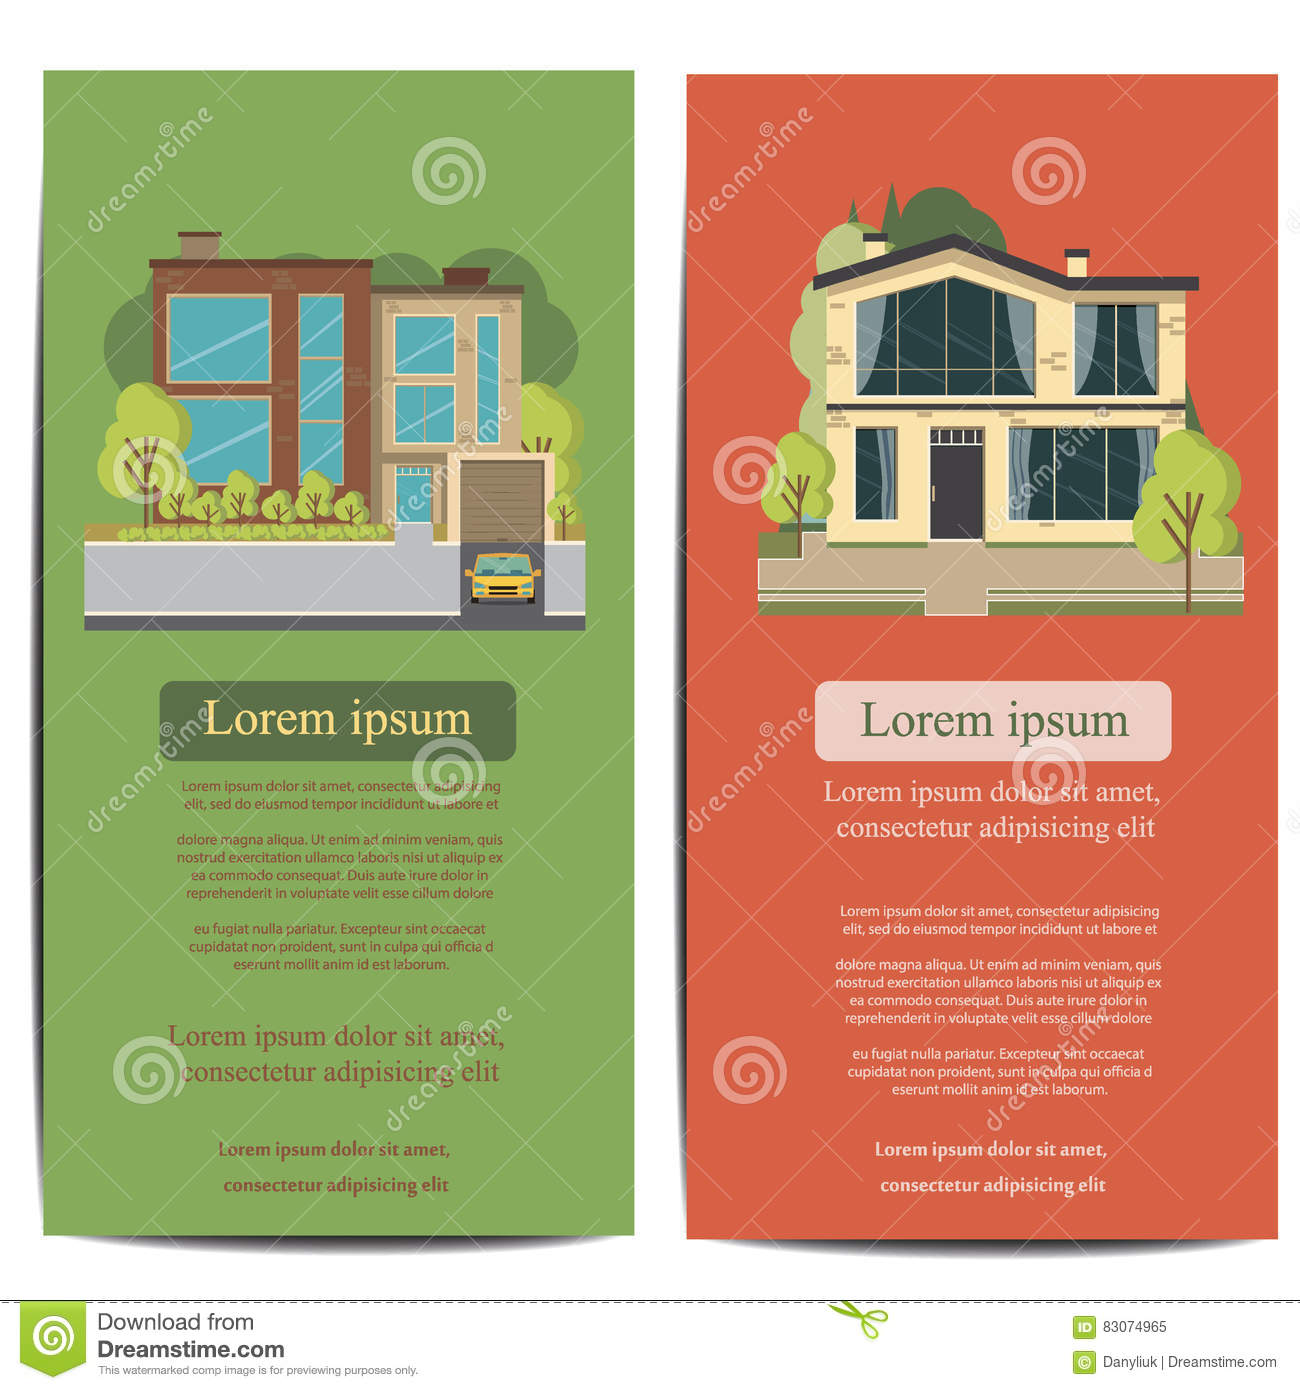 brochure template design concept of architecture vector brochure template design concept of architecture vector illustration